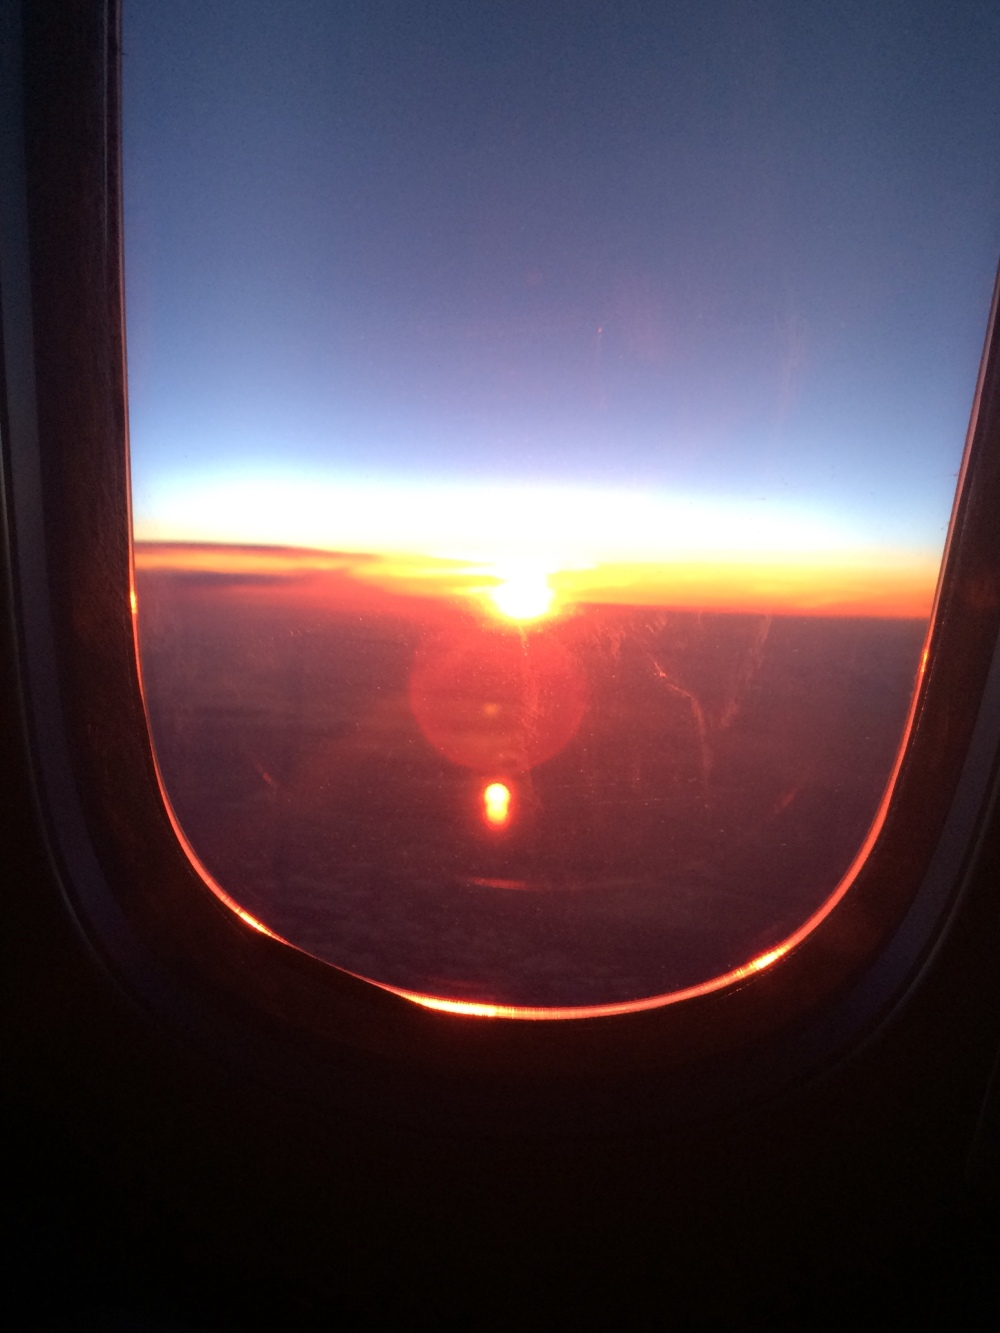 Photo of a sunrise from an airplane window